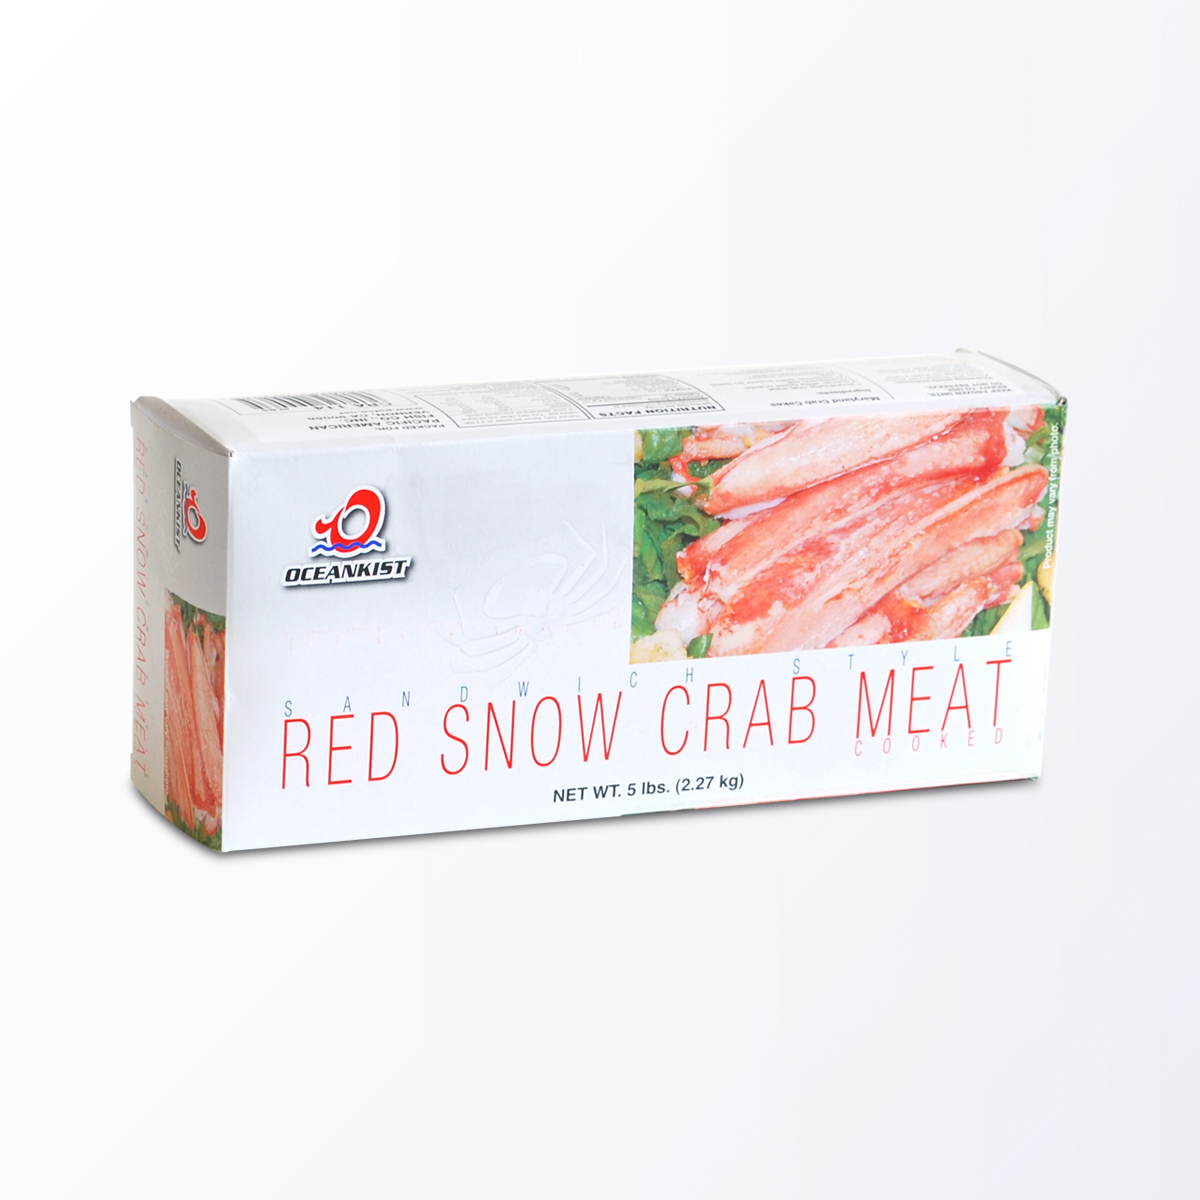 CRA114-Crab-Red-Snow-Meat.jpg